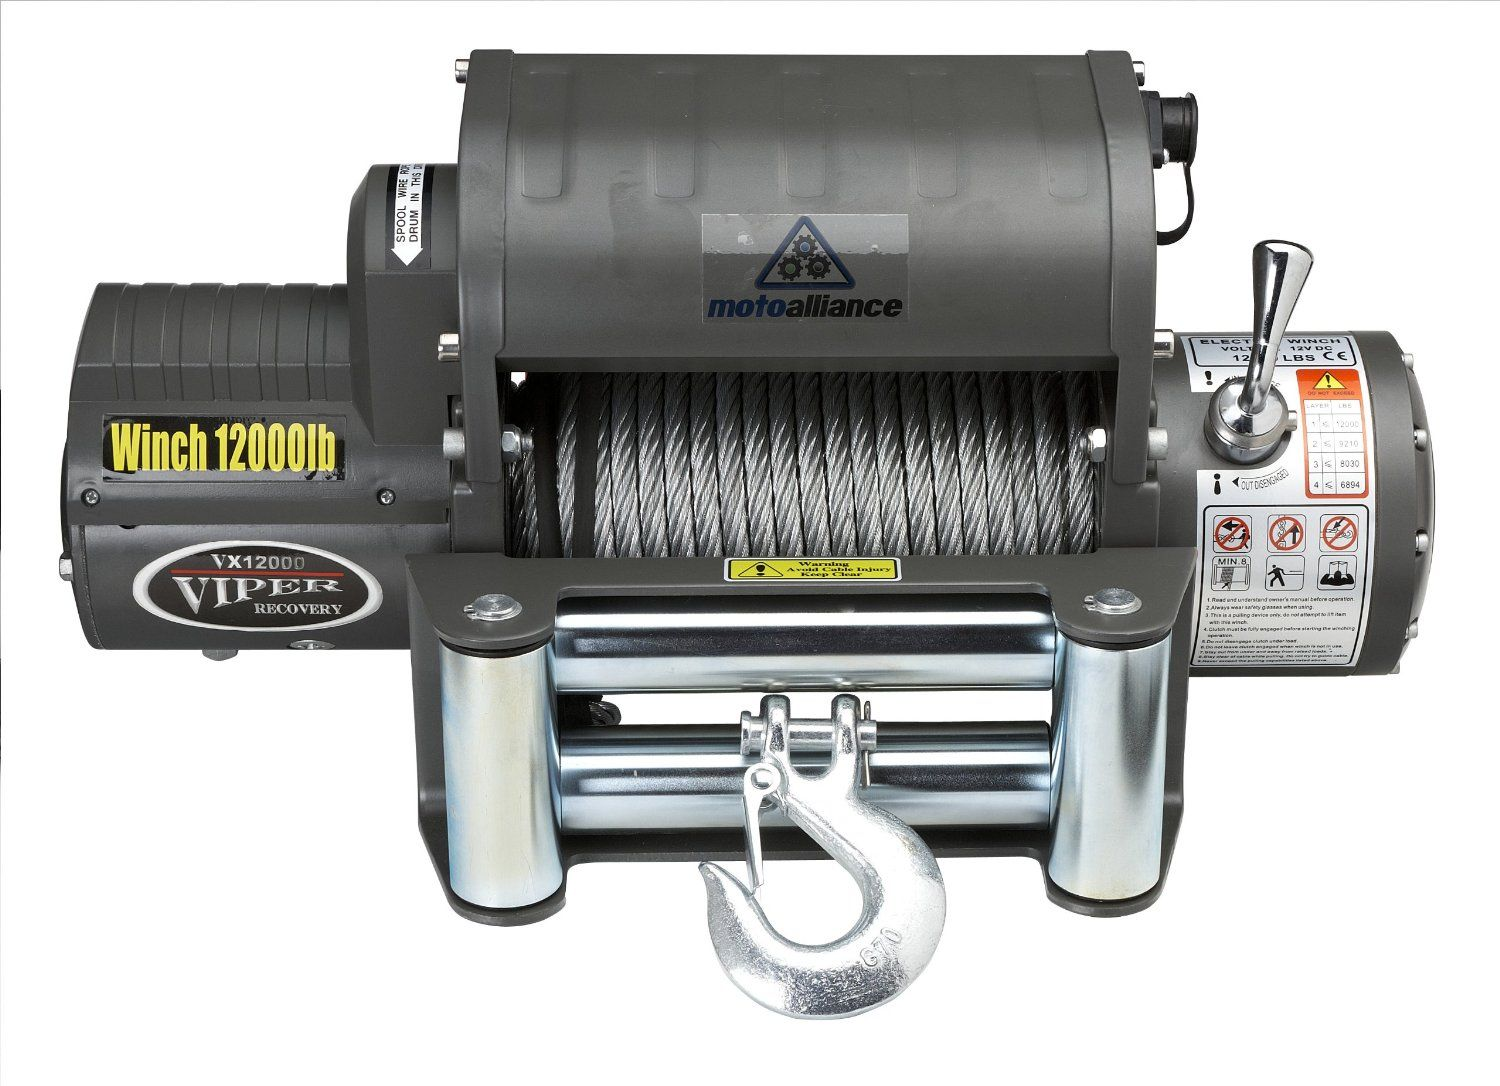 Amazon.com: Viper Classic 12000lb 4x4 Wireless Recovery Winch with Steel cable: Automotive